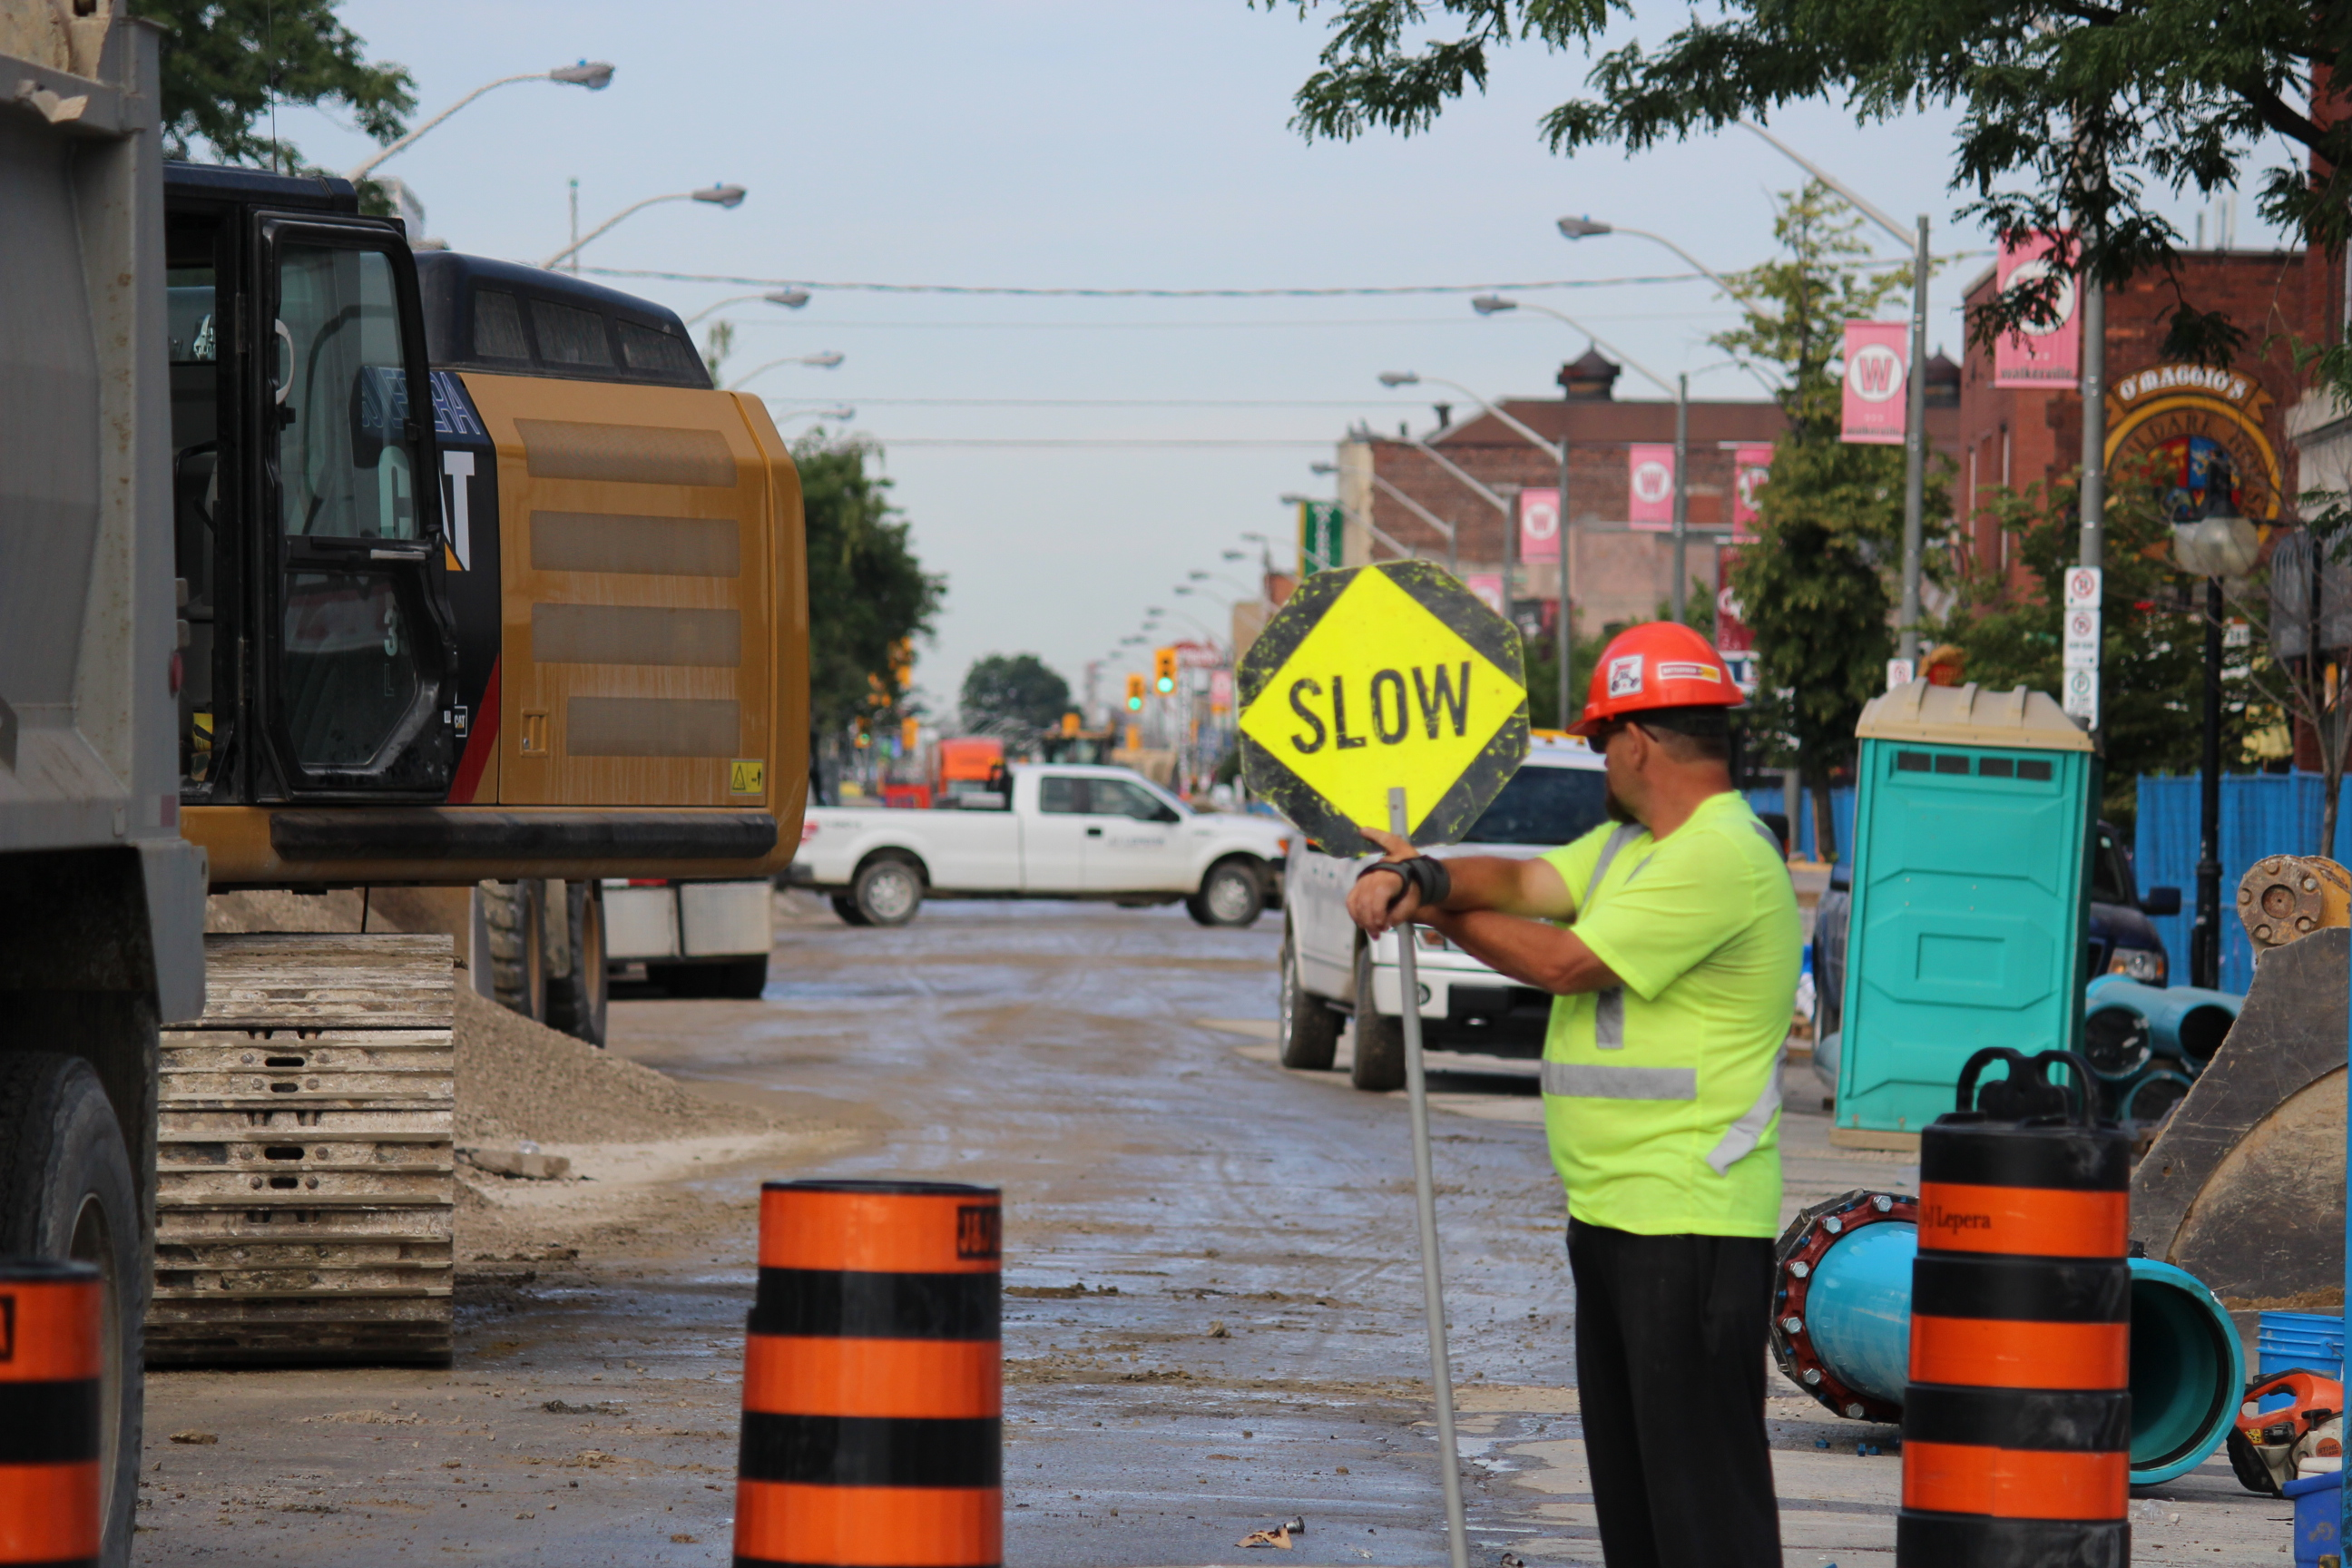 A flagger looks on as construction on Wyandotte St. E. between Devonshire Rd. and Gladstone Ave. continues. (Photo by Adelle Loiselle.)